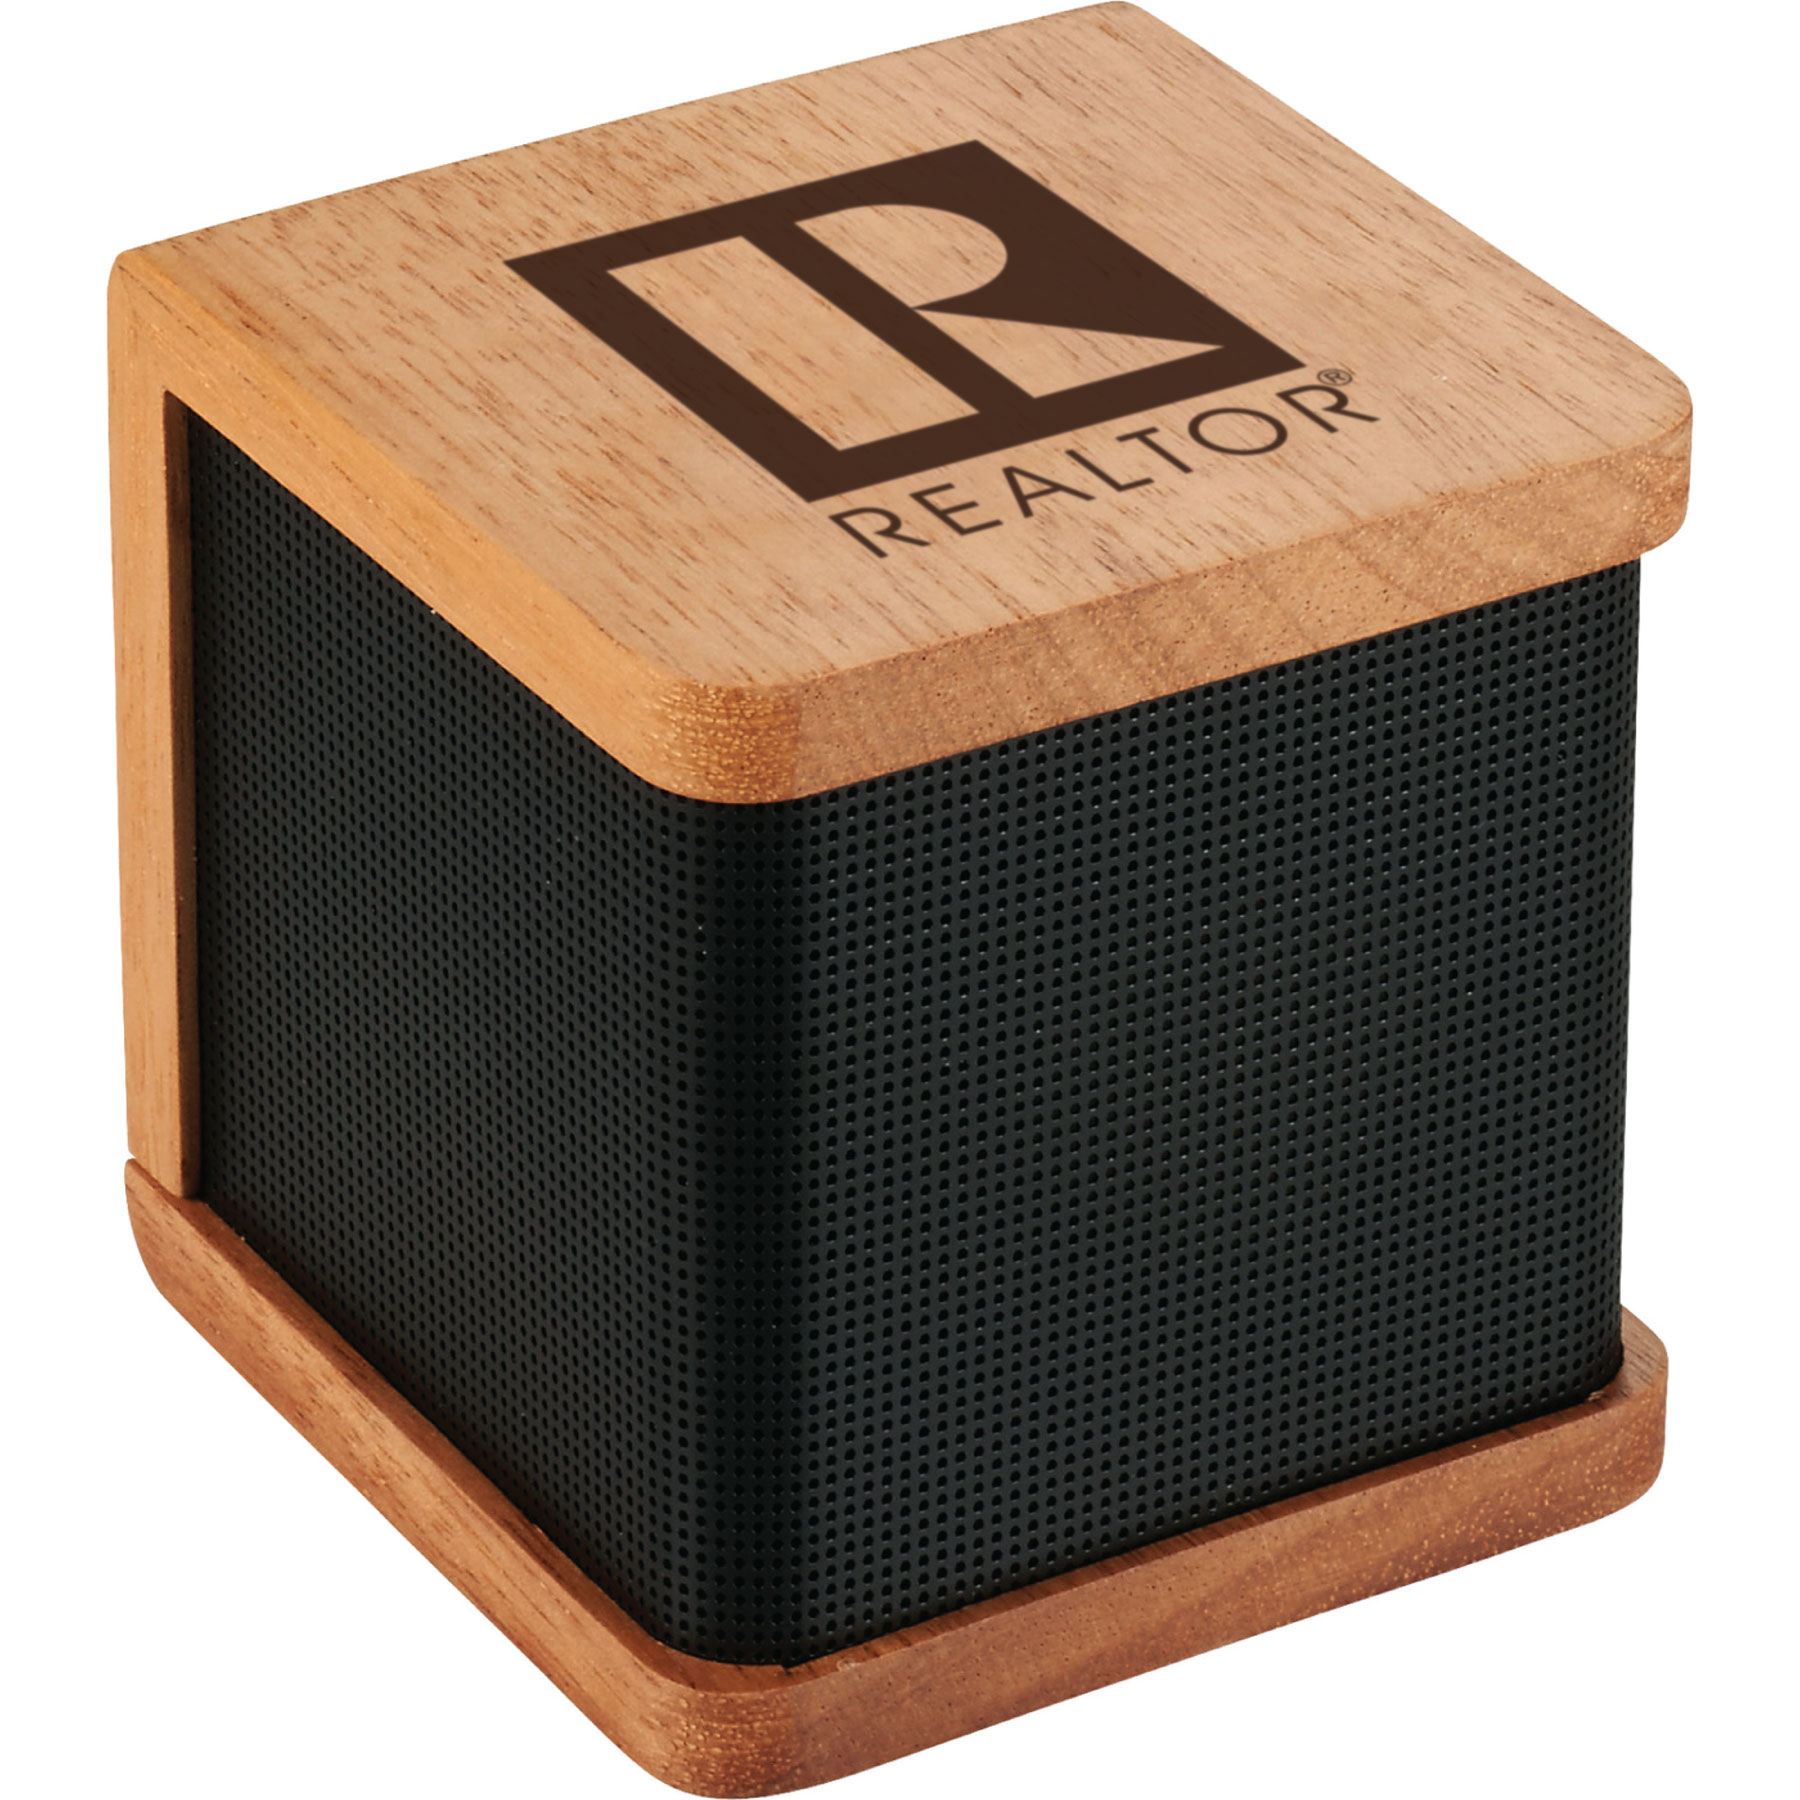 REALTOR-logo Wooden Bluetooth Speaker Speakers,Bluetooths,Radio,MP3,Songs,